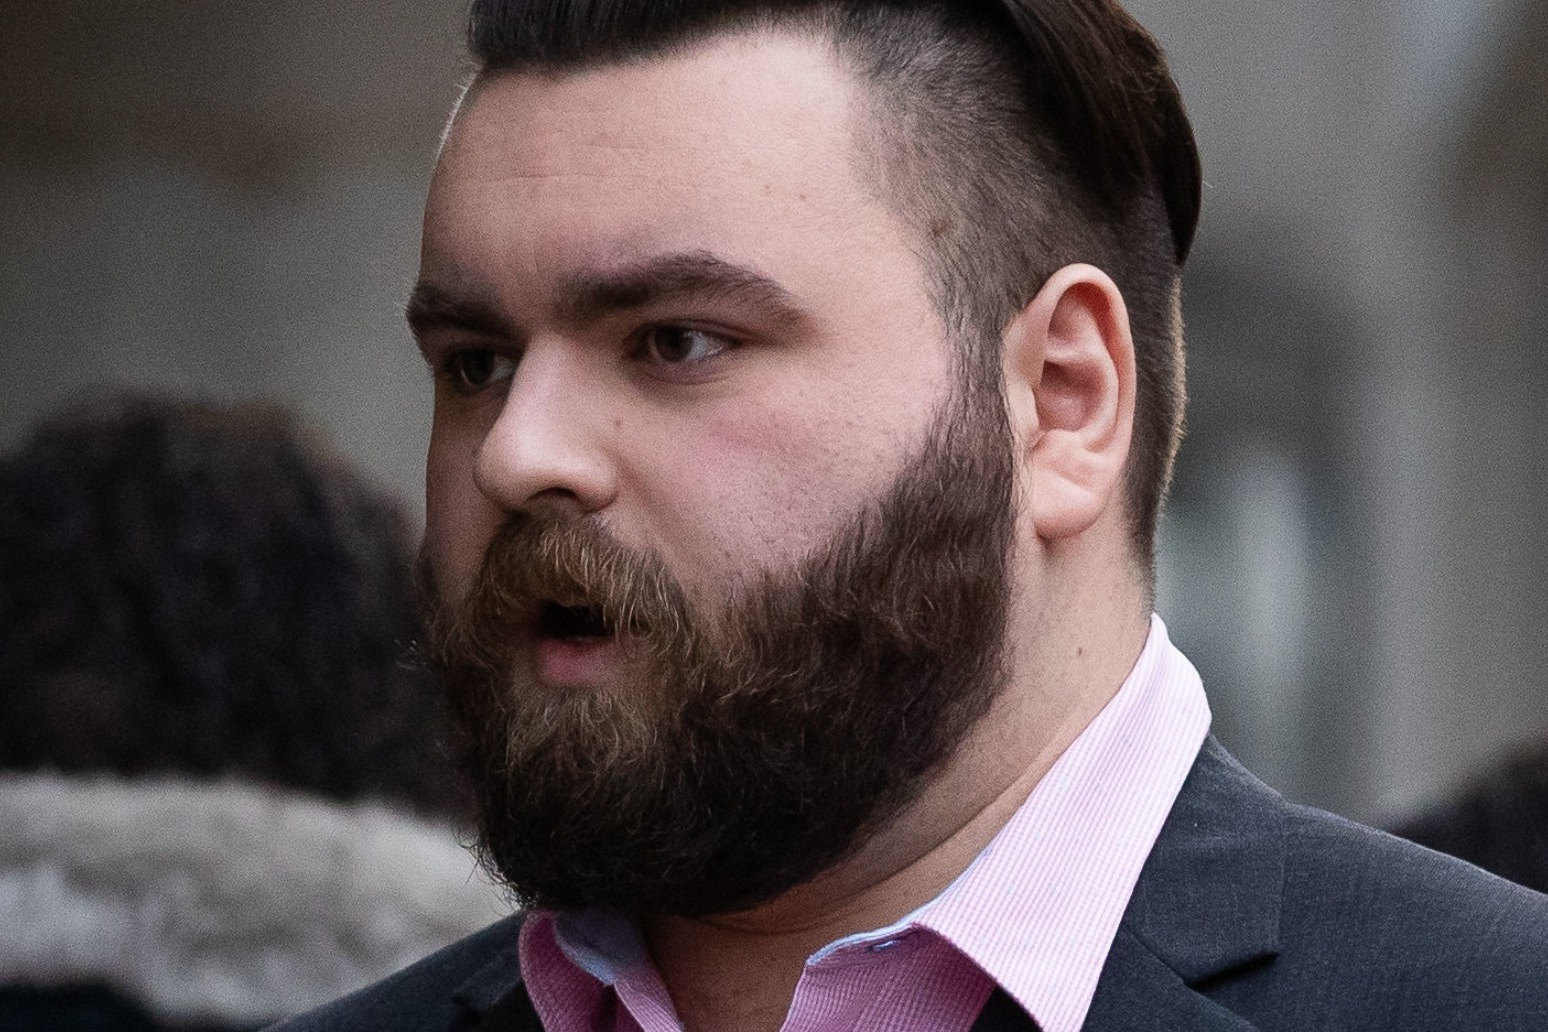 TRIAL DATE FOR \'NEO-NAZI\' POLITICS STUDENT CHARGED WITH TERROR OFFENCES